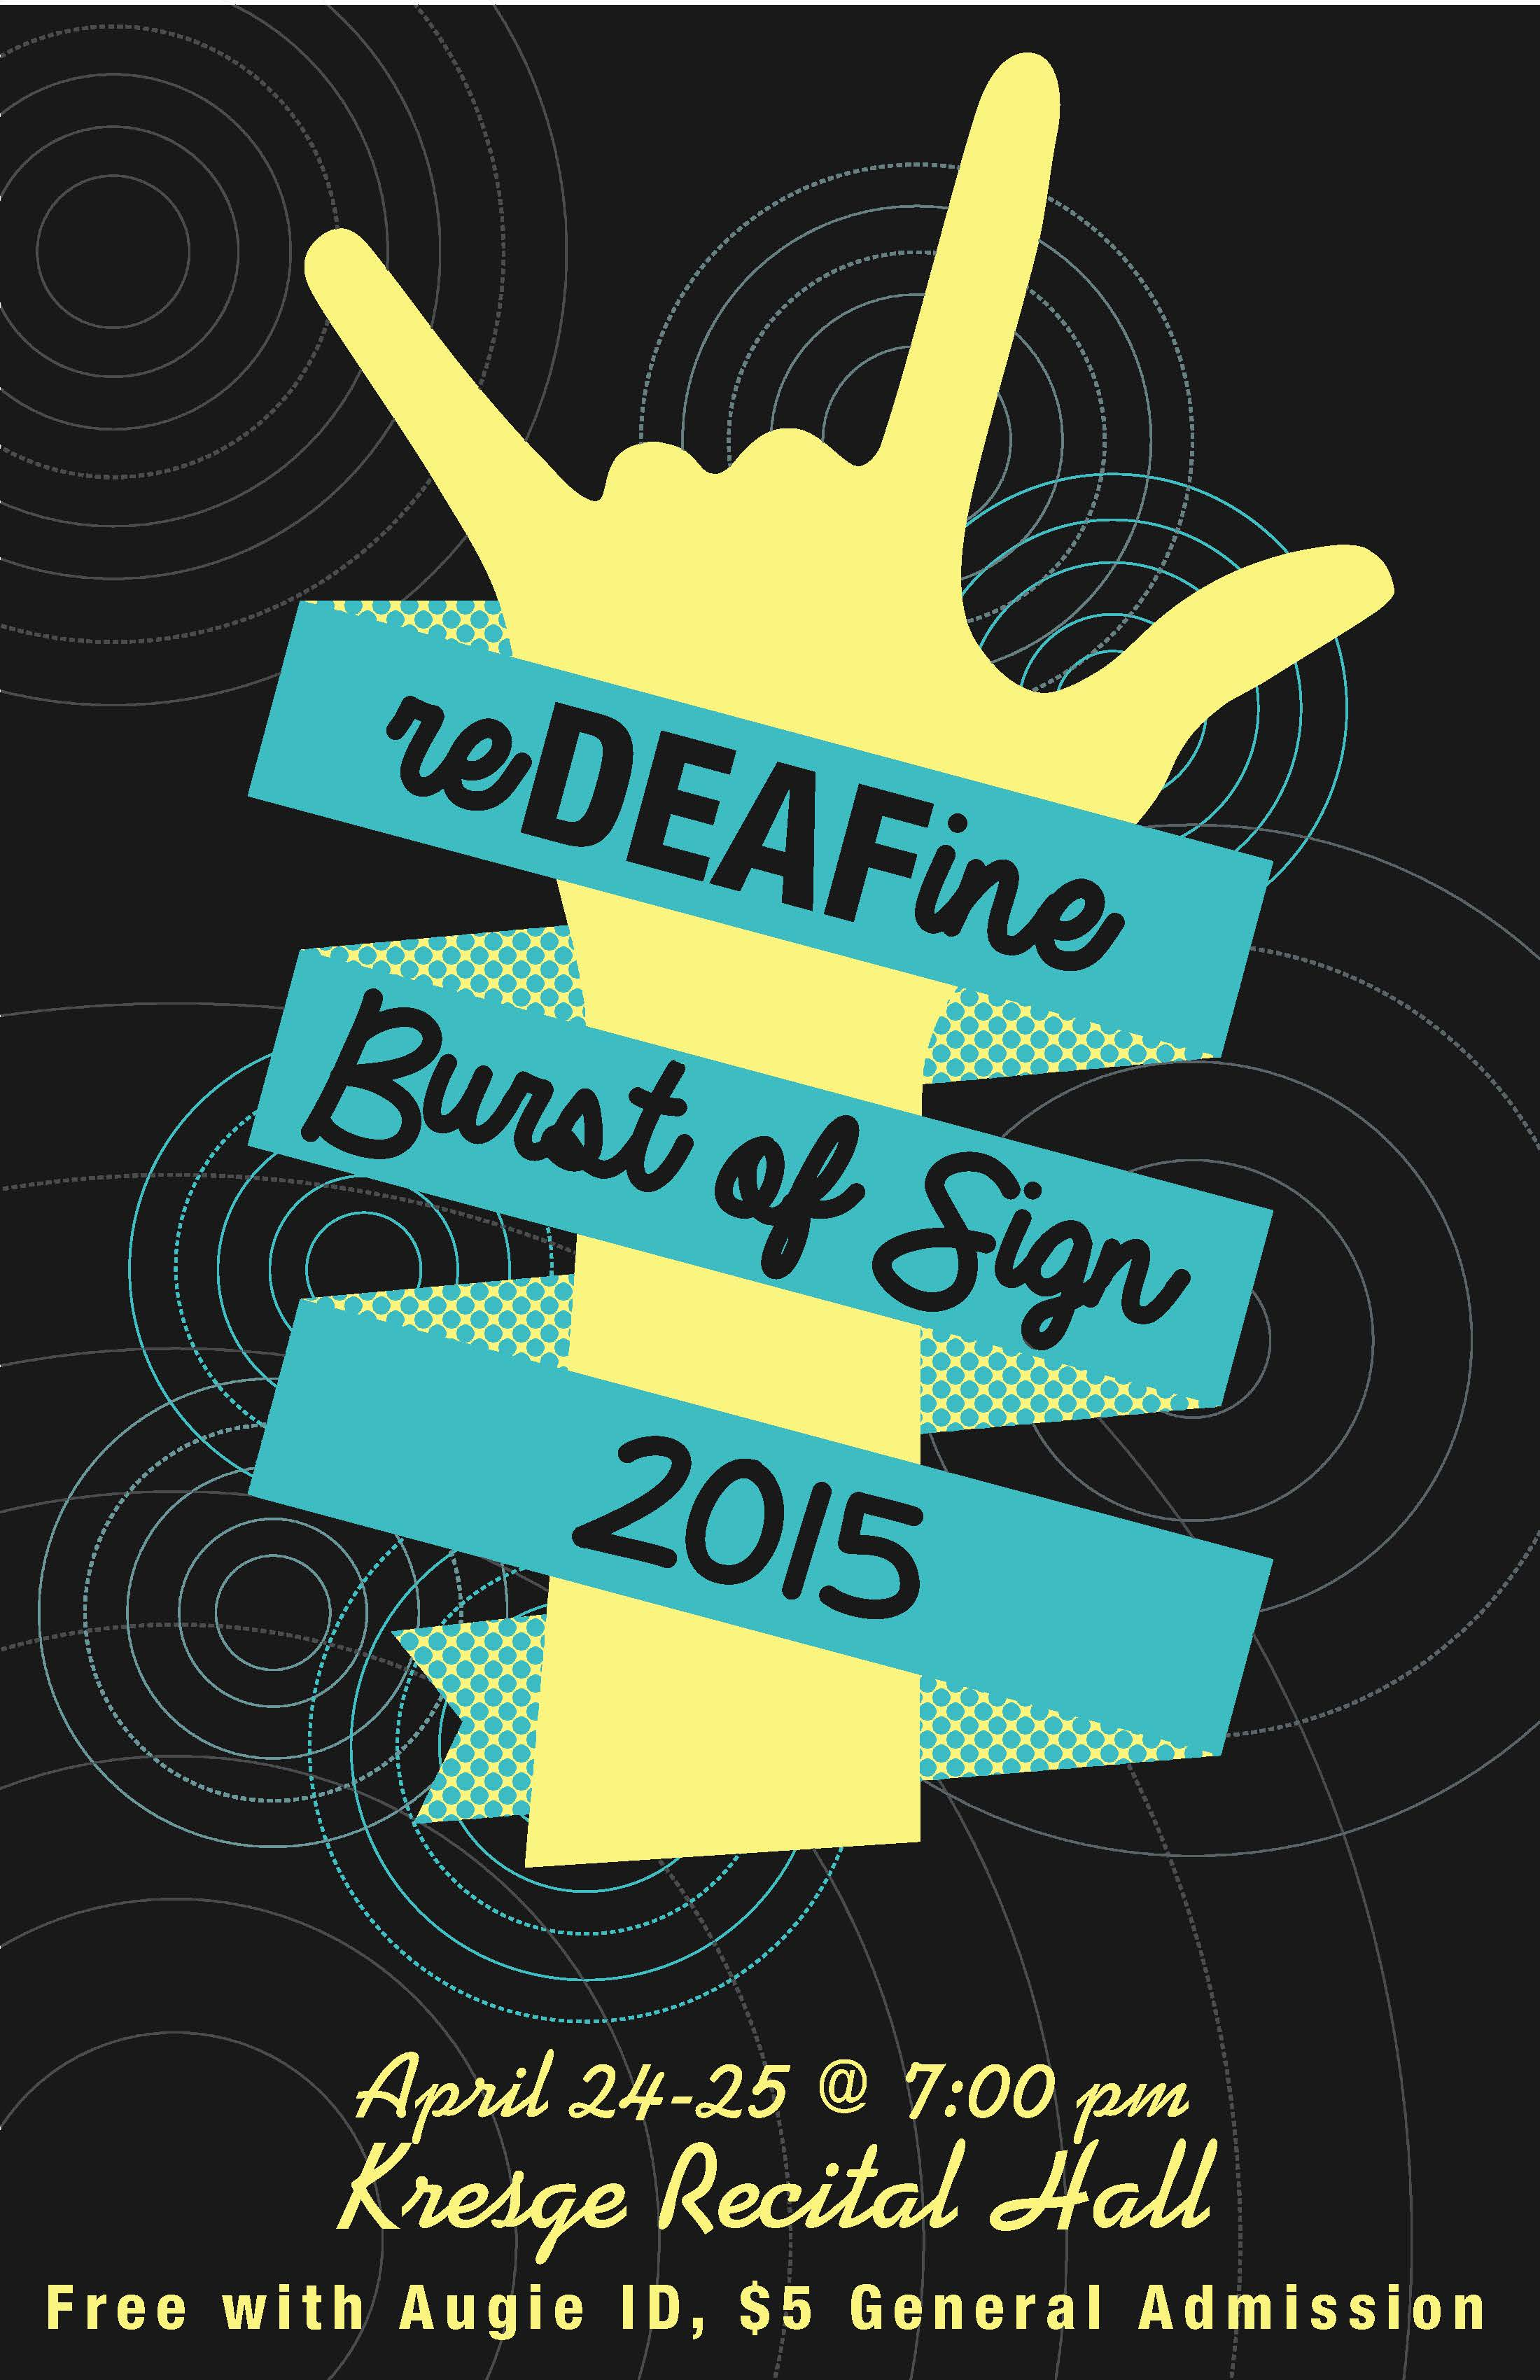 Burst of Sign 2015